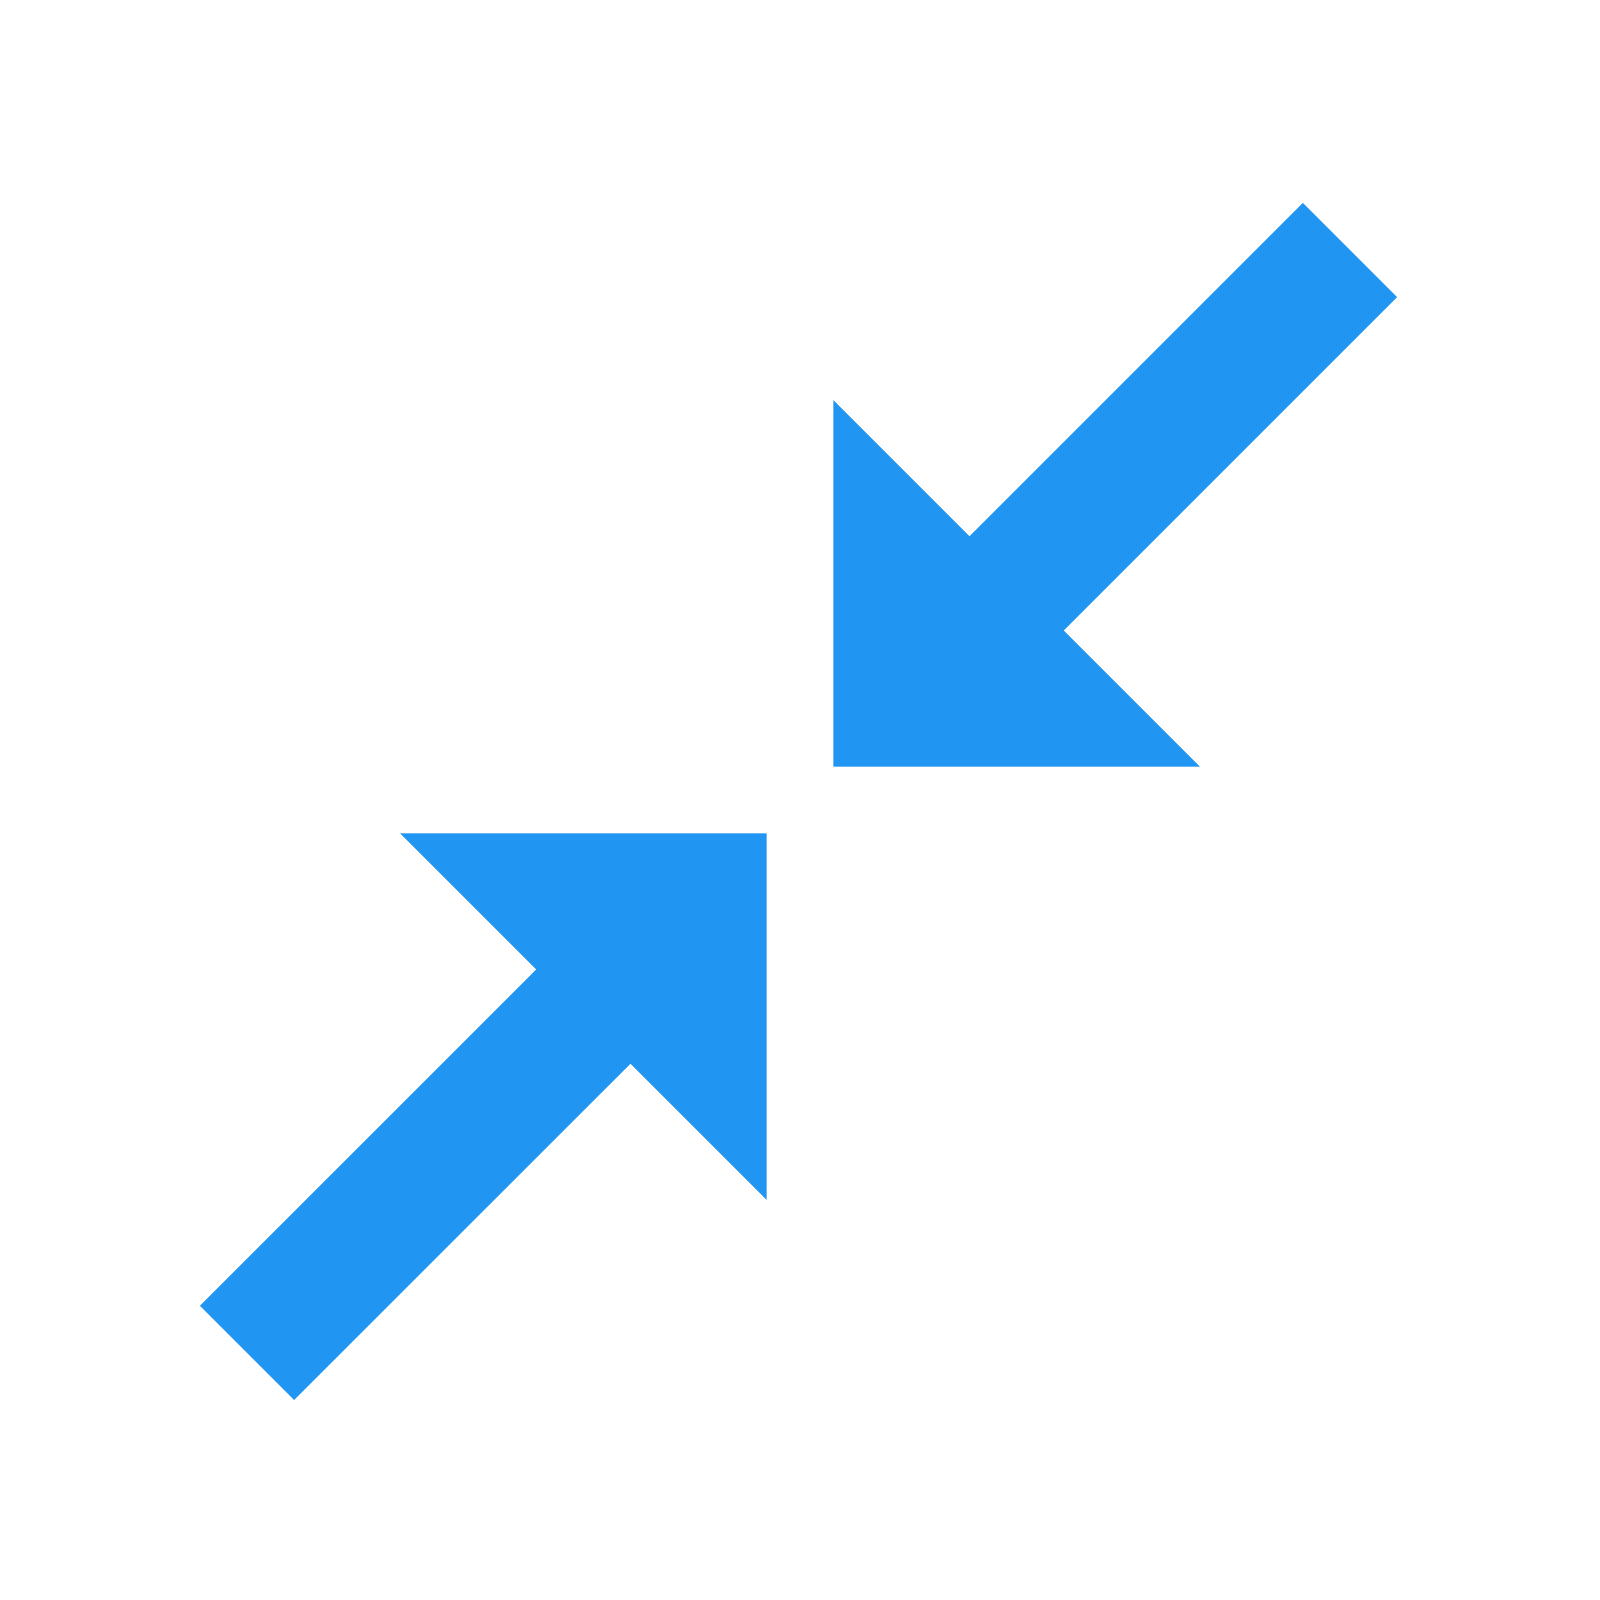 Compress icon free download. Png shrink free stock